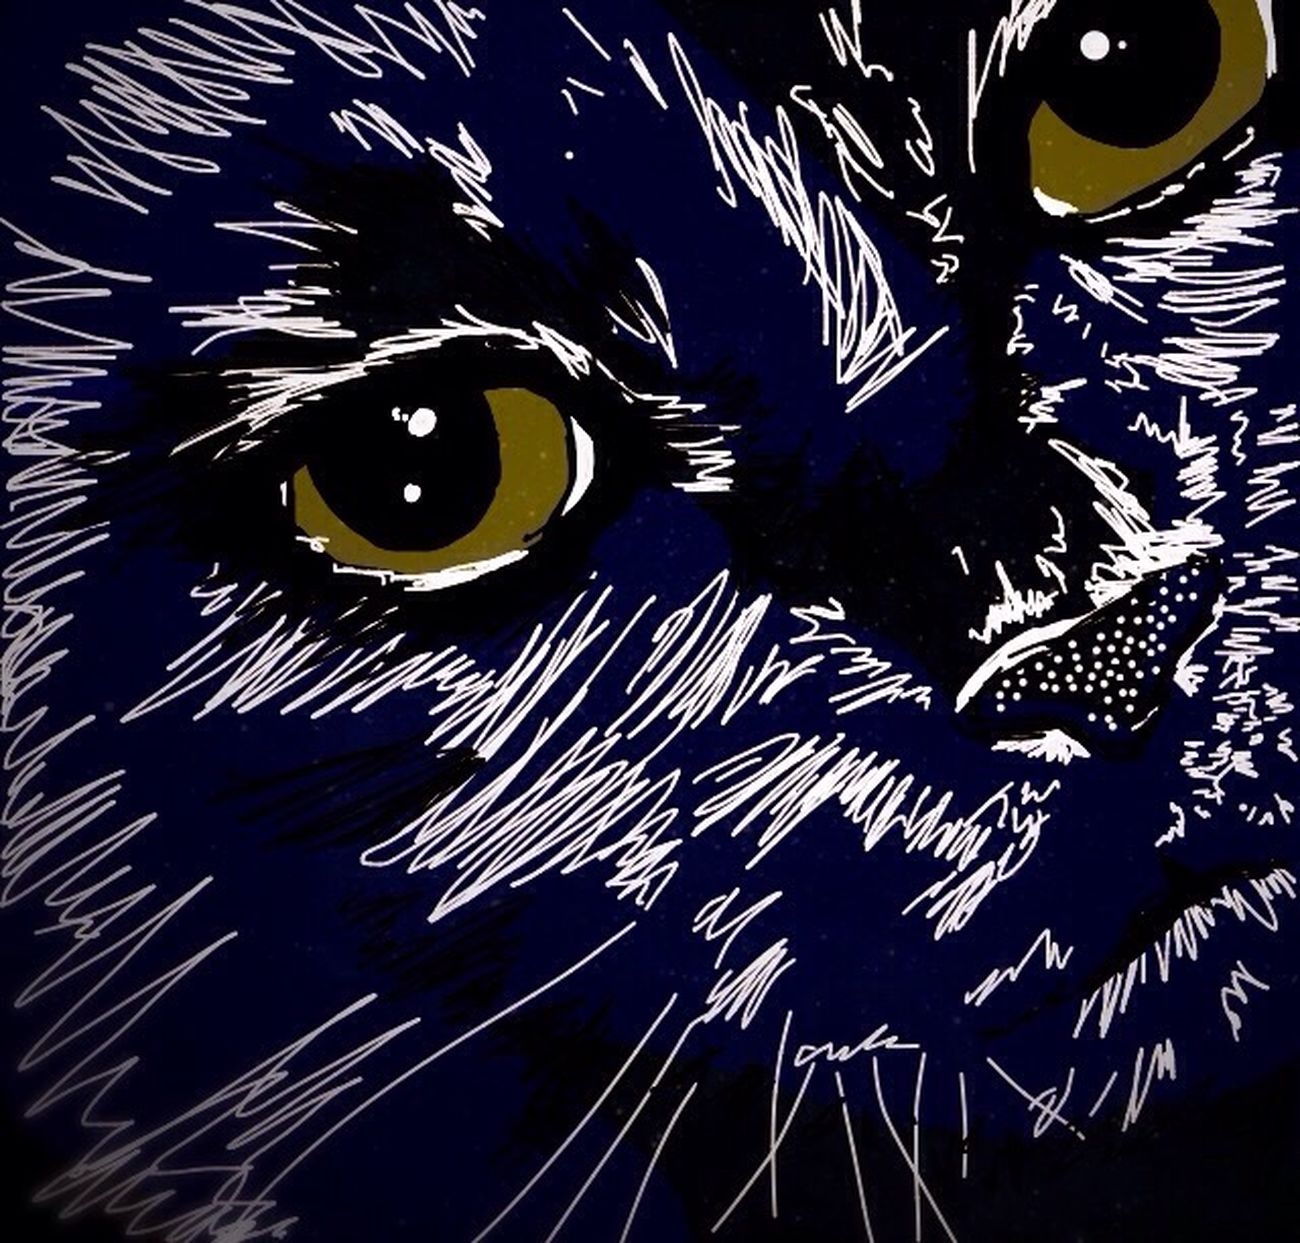 Another pic of my cat, sorry but she's a great mews! 😁 Spooky One Animal No People Night Close-up Concentric Scientific Experiment Astronomy Outdoors Star - Space Abstract Art Digital Art Digital Painting Cat Black Blue Eye